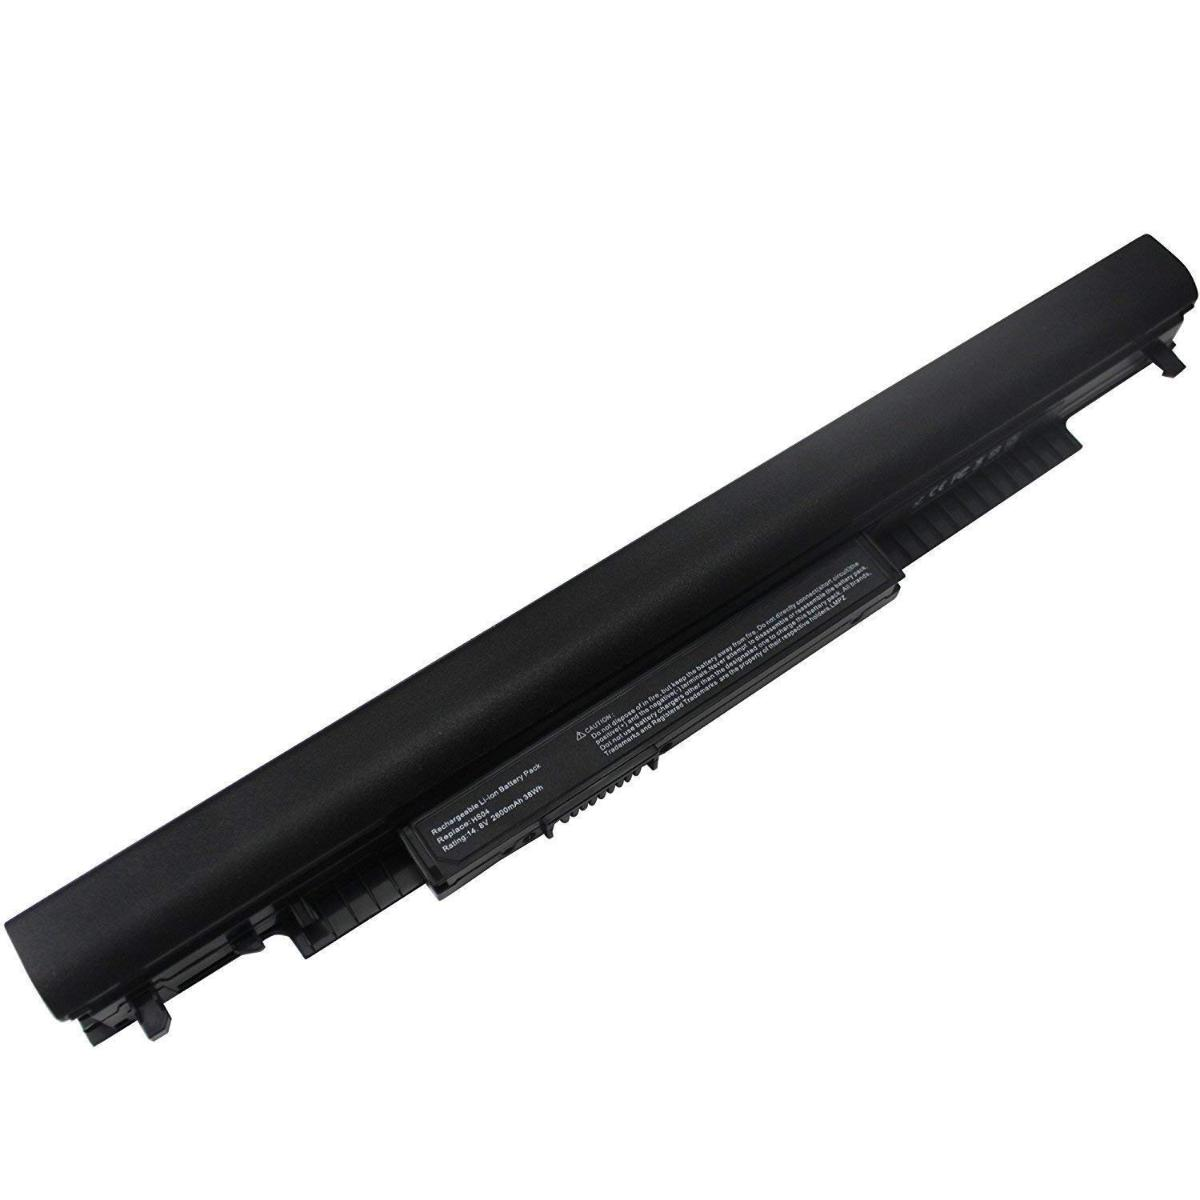 Μπαταρία Laptop - Battery for HP Pavilion 807611-131, 807611-141, 807611-421, 807611-831, 807612-131, 807612-141, 807612-421, 807612-831, 807956-001, 807957-001, HS03, HS03031-CL, HS04, HS04041-CL, HSTNN-LB6U, HSTNN-LB6V OEM (Κωδ.1-BAT0007(2.2Ah))